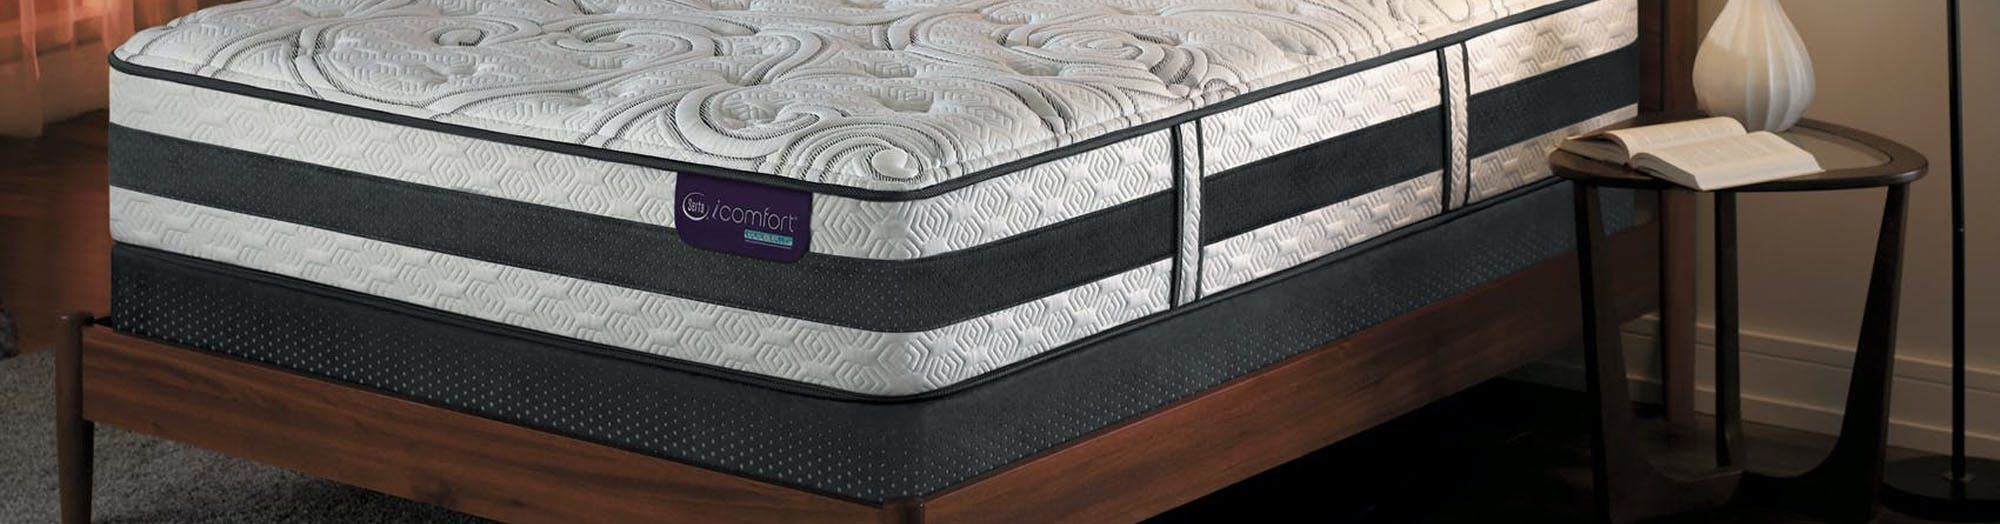 Shop For IComfort Mattresses In Cincinnati And Dayton OH